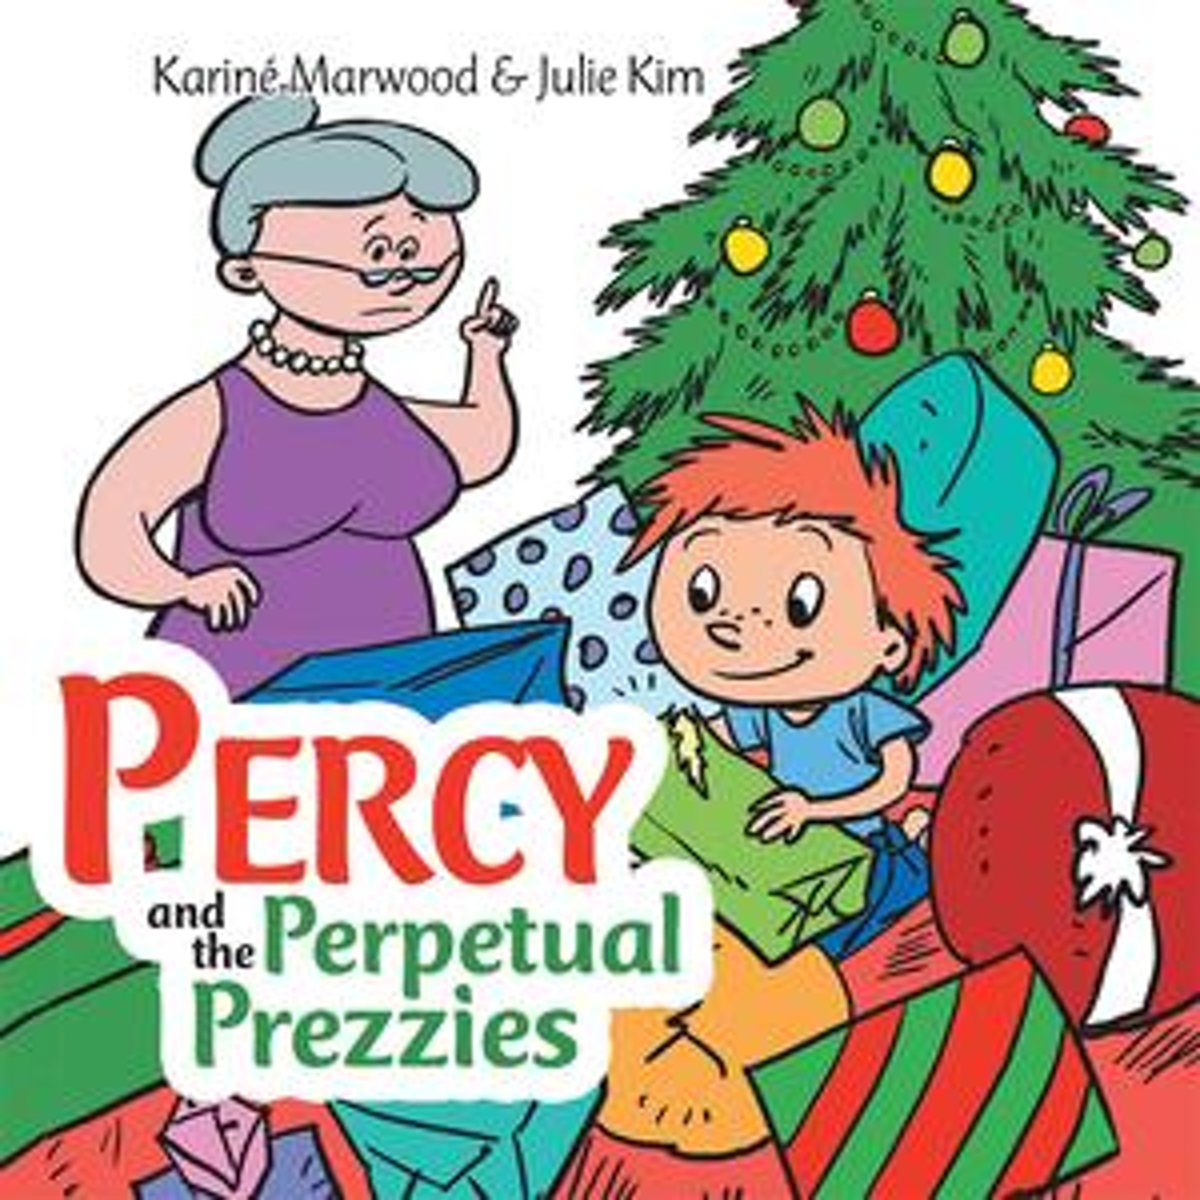 Percy and the Perpetual Prezzies